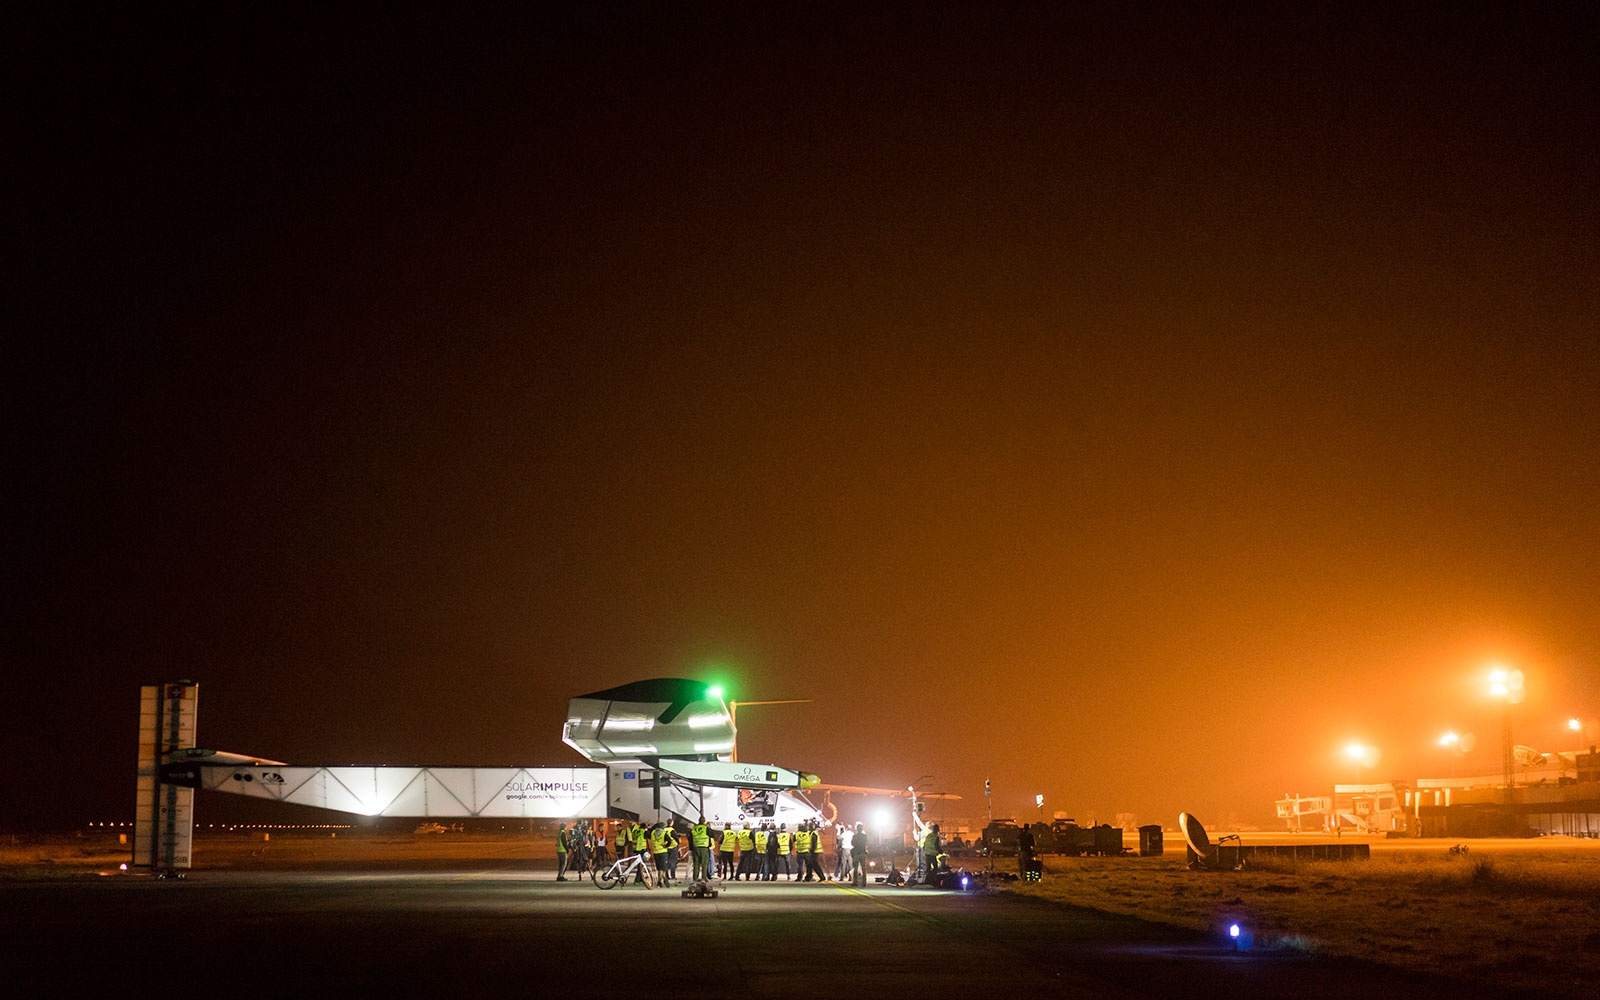 Varanasi, India, March 18, 2015: Solar Impusle 2 takes-off for its 4th flight from Varanasi to Mandalay (Myanmar) with Bertrand Piccard at the controls. The First Round-the-World Solar Flight will take 500 flight hours and cover 35'000 km, over five months. Swiss founders and pilots, Bertrand Piccard and André Borschberg hope to demonstrate how pioneering spirit, innovation and clean technologies can change the world. The duo will take turns flying Solar Impulse 2, changing at each stop and will fly over the Arabian Sea, to India, to Myanmar, to China, across the Pacific Ocean, to the United States, over the Atlantic Ocean to Southern Europe or Northern Africa before finishing the journey by returning to the initial departure point. Landings will be made every few days to switch pilots and organize public events for governments, schools and universities.